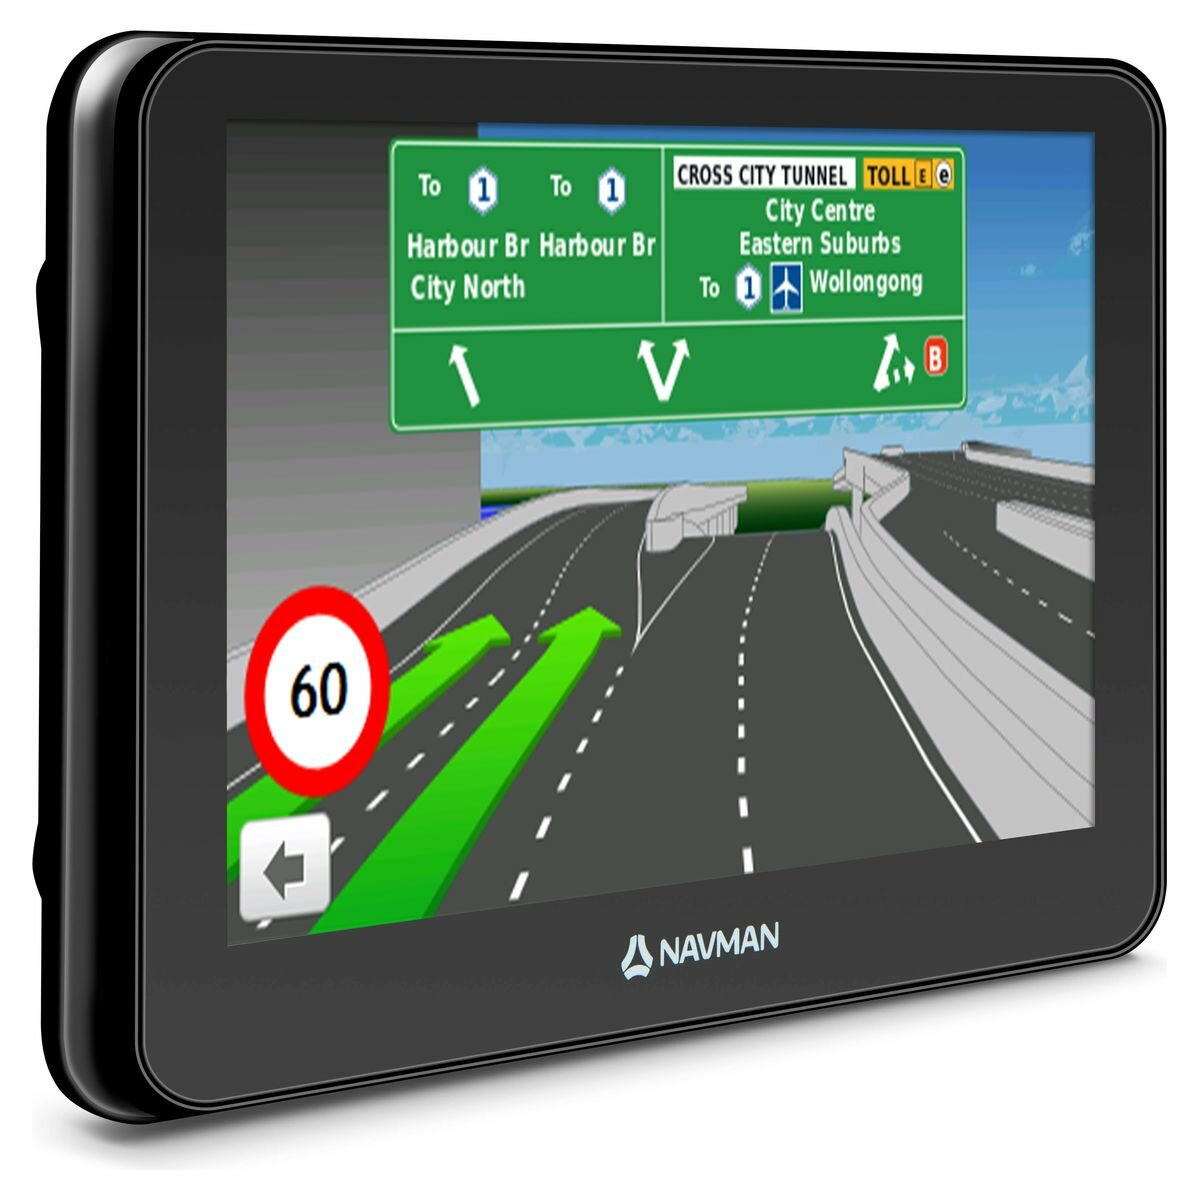 Navman EZY450LMT GPS Navigation System with 5 Inch Screen and Bluetooth  4213564